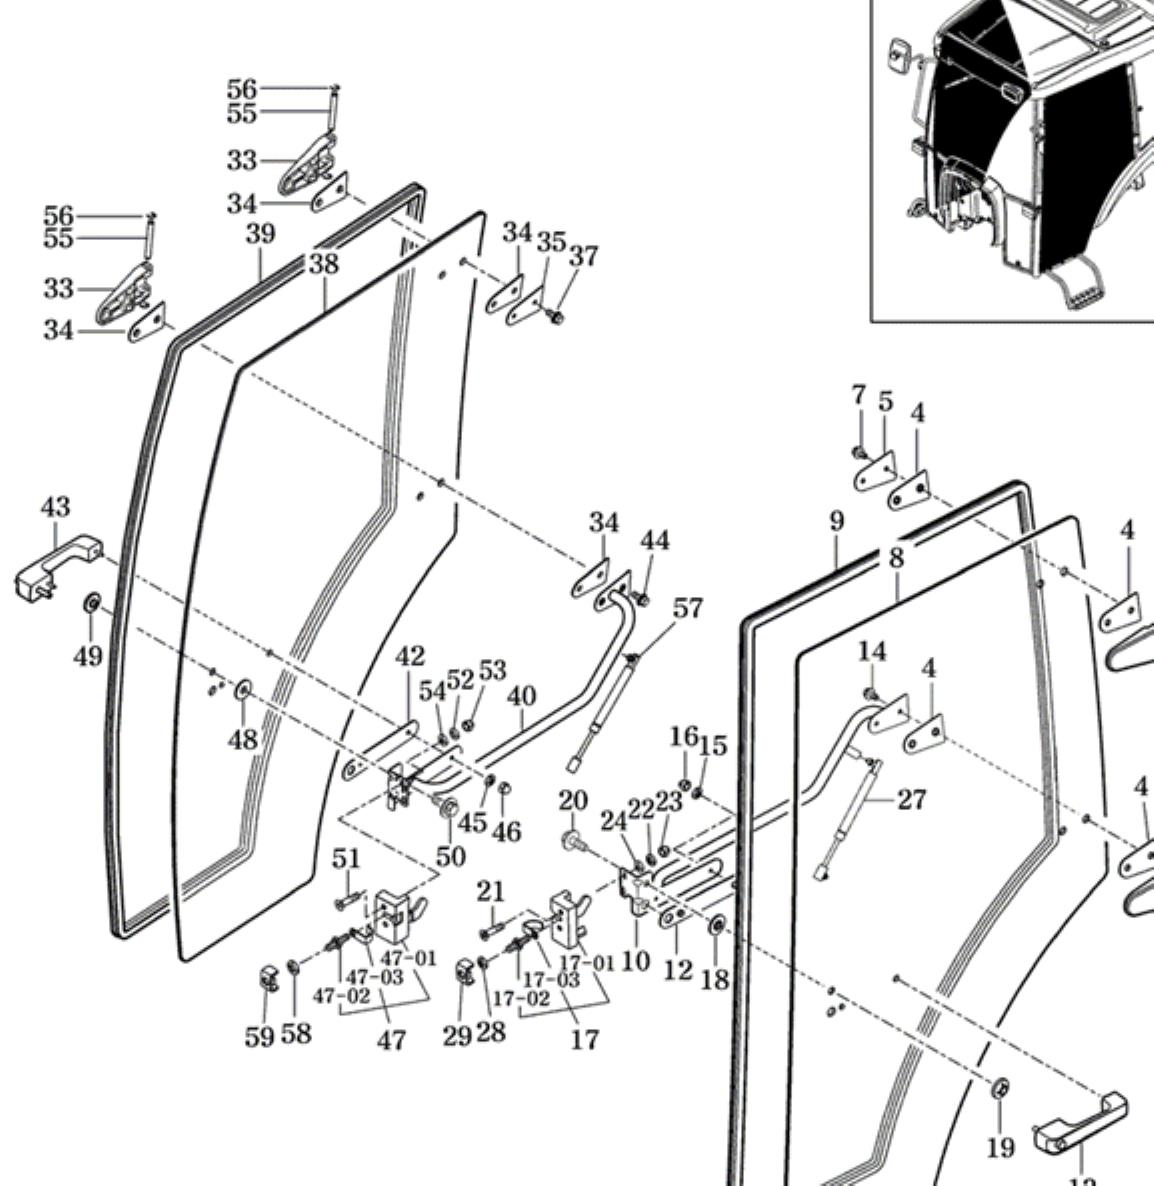 Product info furthermore 61977 besides Showthread furthermore Item I GRID007879 also Cabi  Construction. on door hinge diagram